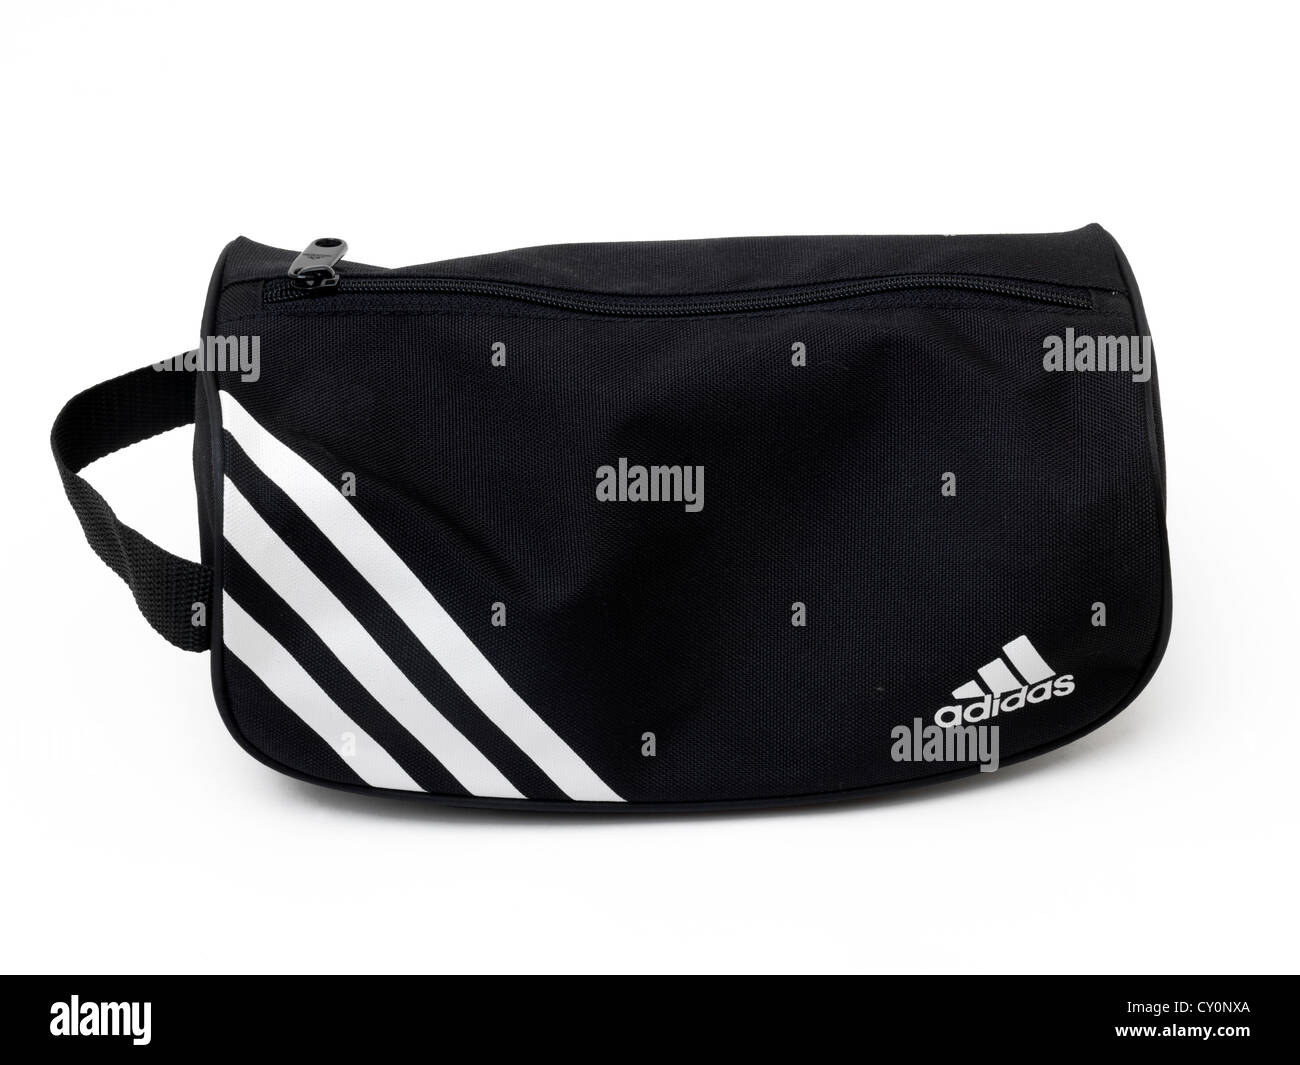 03c3948a2f17 Buy adidas toiletry bag   OFF68% Discounted